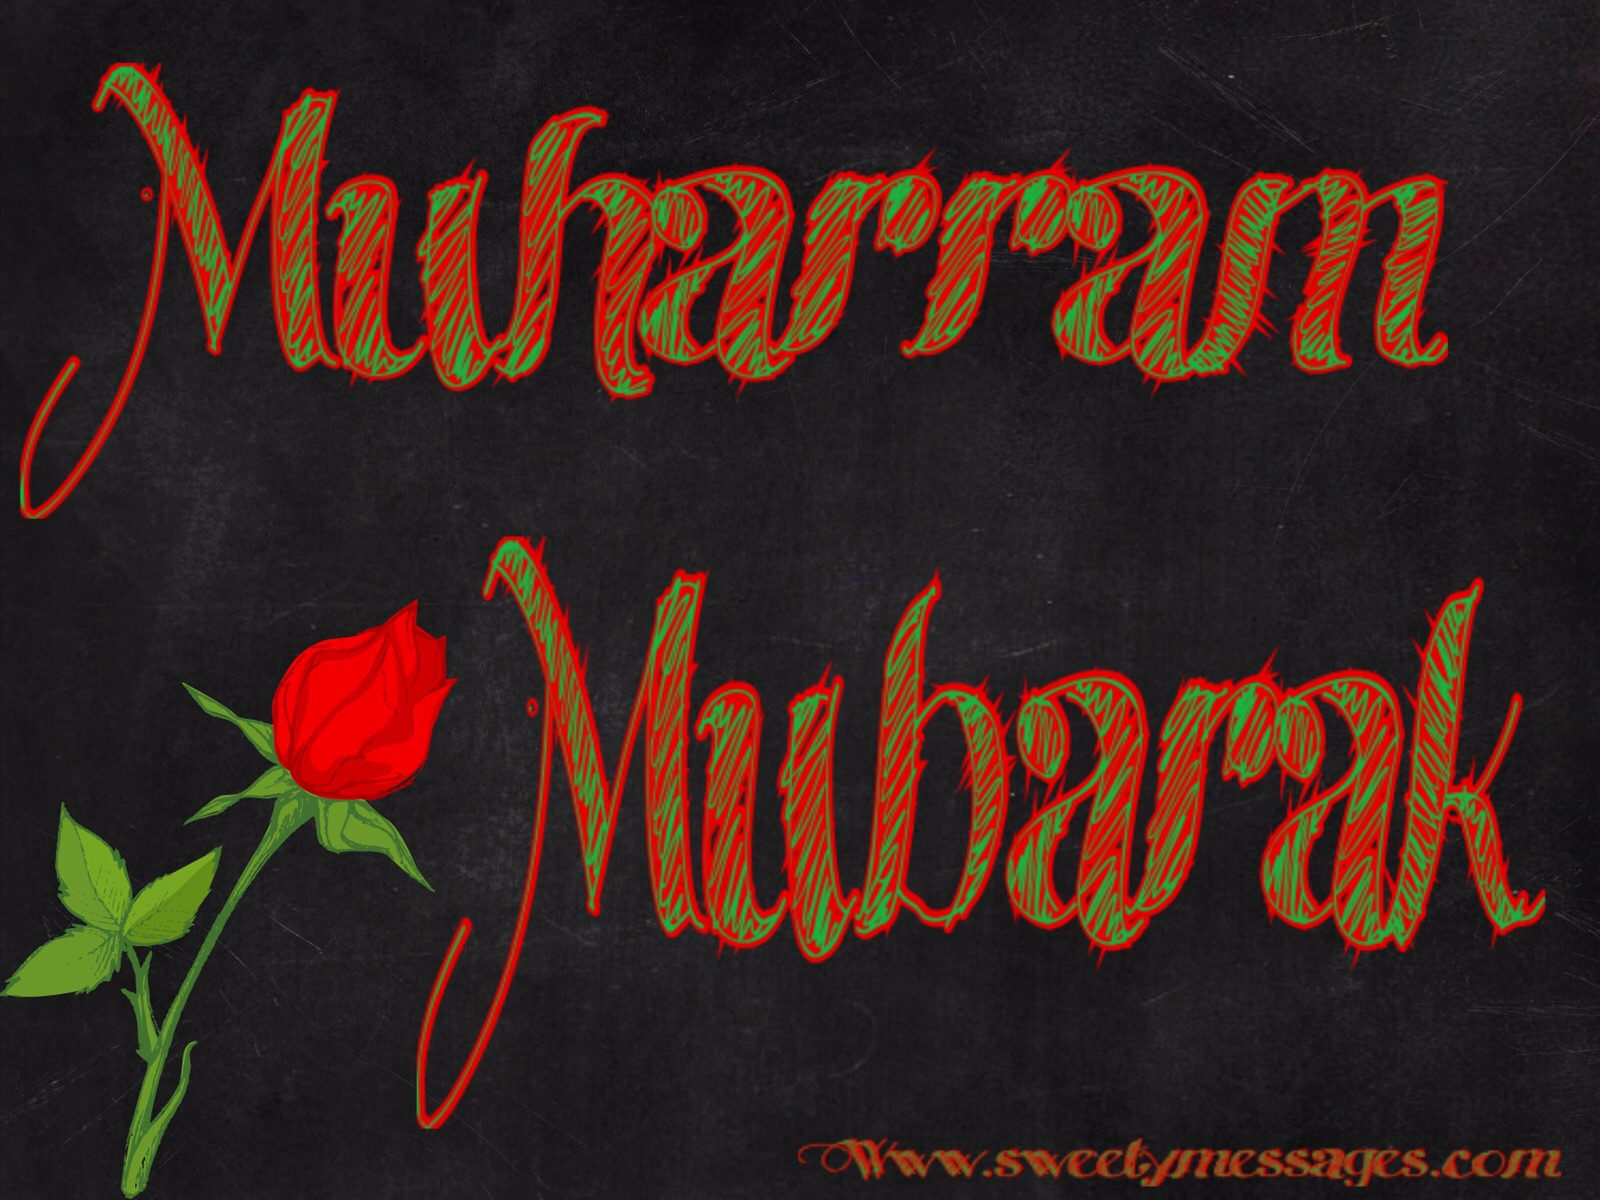 Muharram Mubarak Messages And Images Beautiful Messages